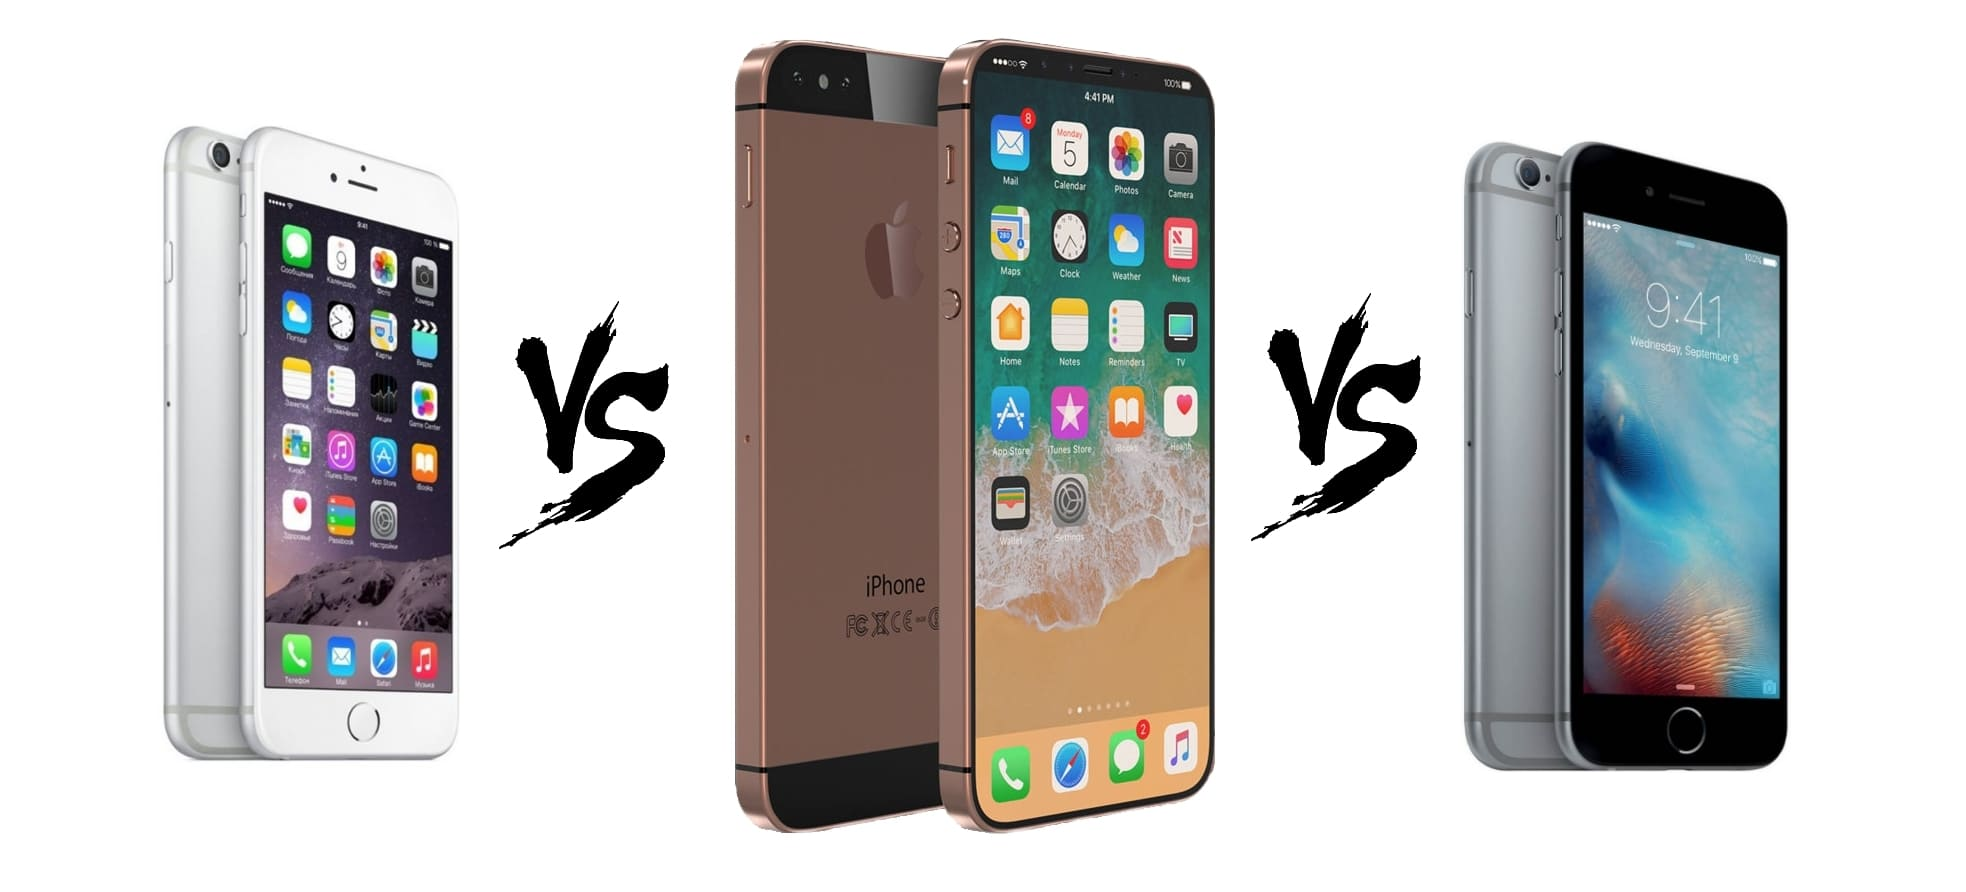 iPhone SE 2 vs iPhone 6 vs iPhone 6S